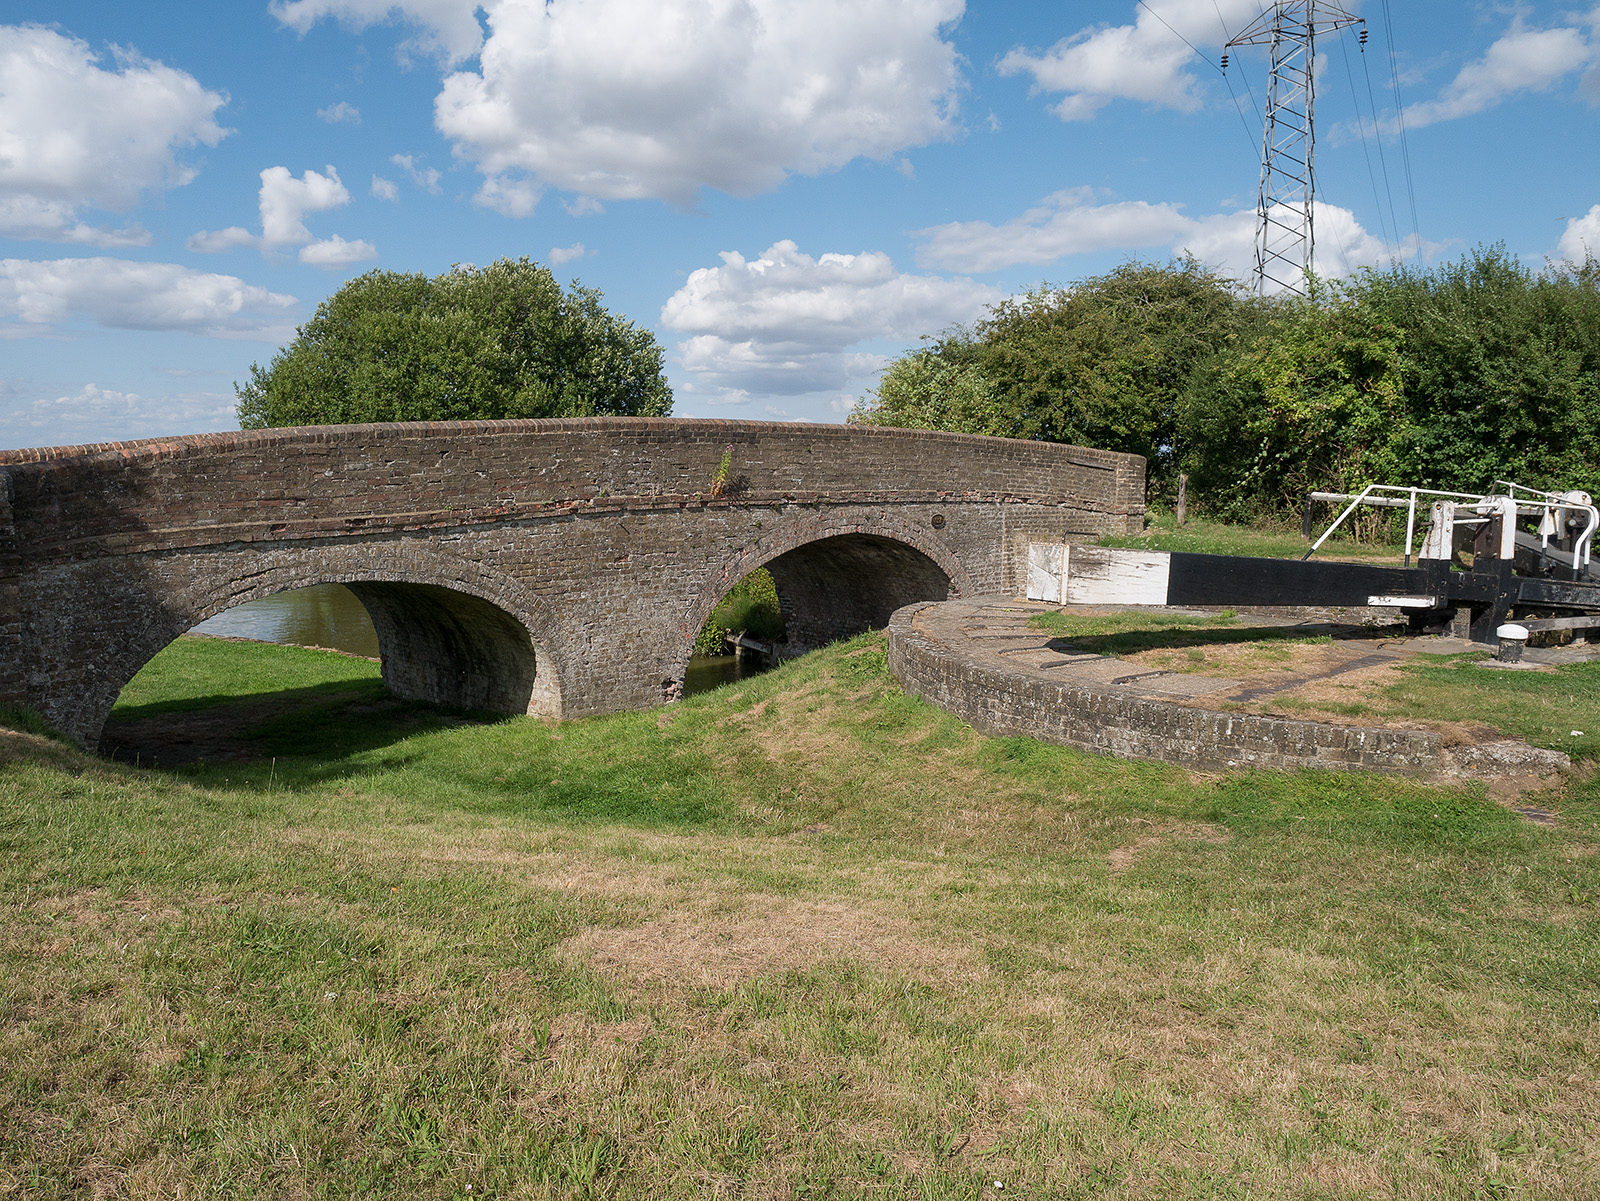 Bridge 122 and Ivinghoe locks - note the unused archway